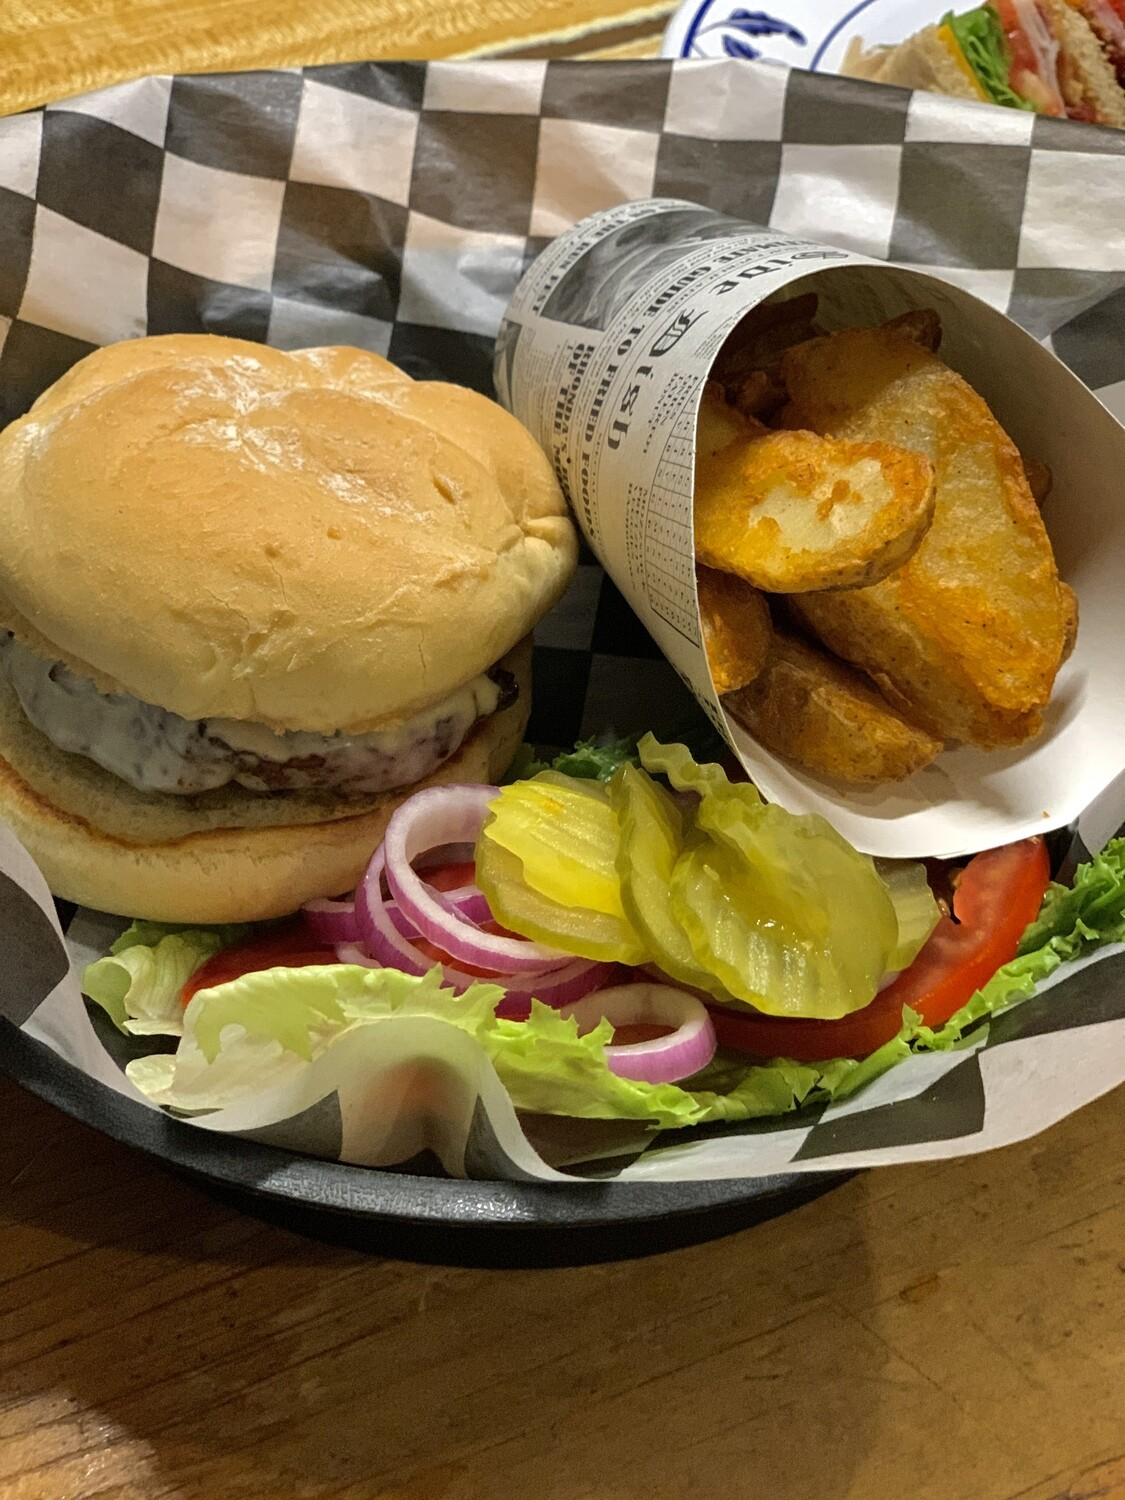 Mile High Old Fashioned Burger